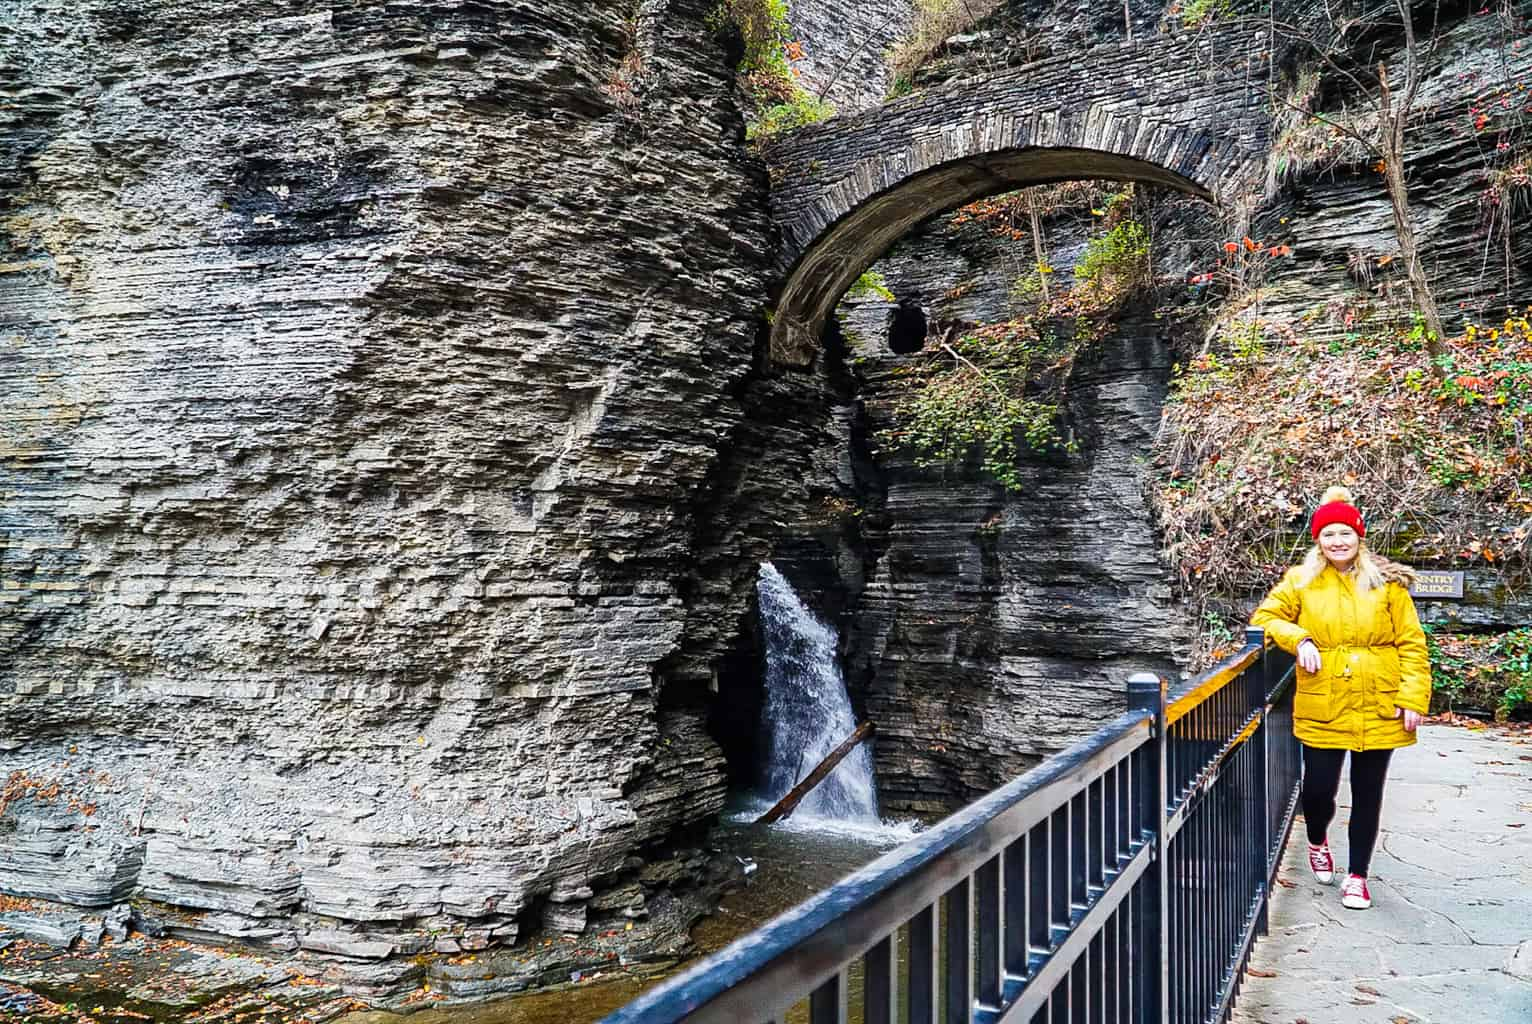 Me standing in front of the natural waterfall and stone bridges of Watkins Glen.